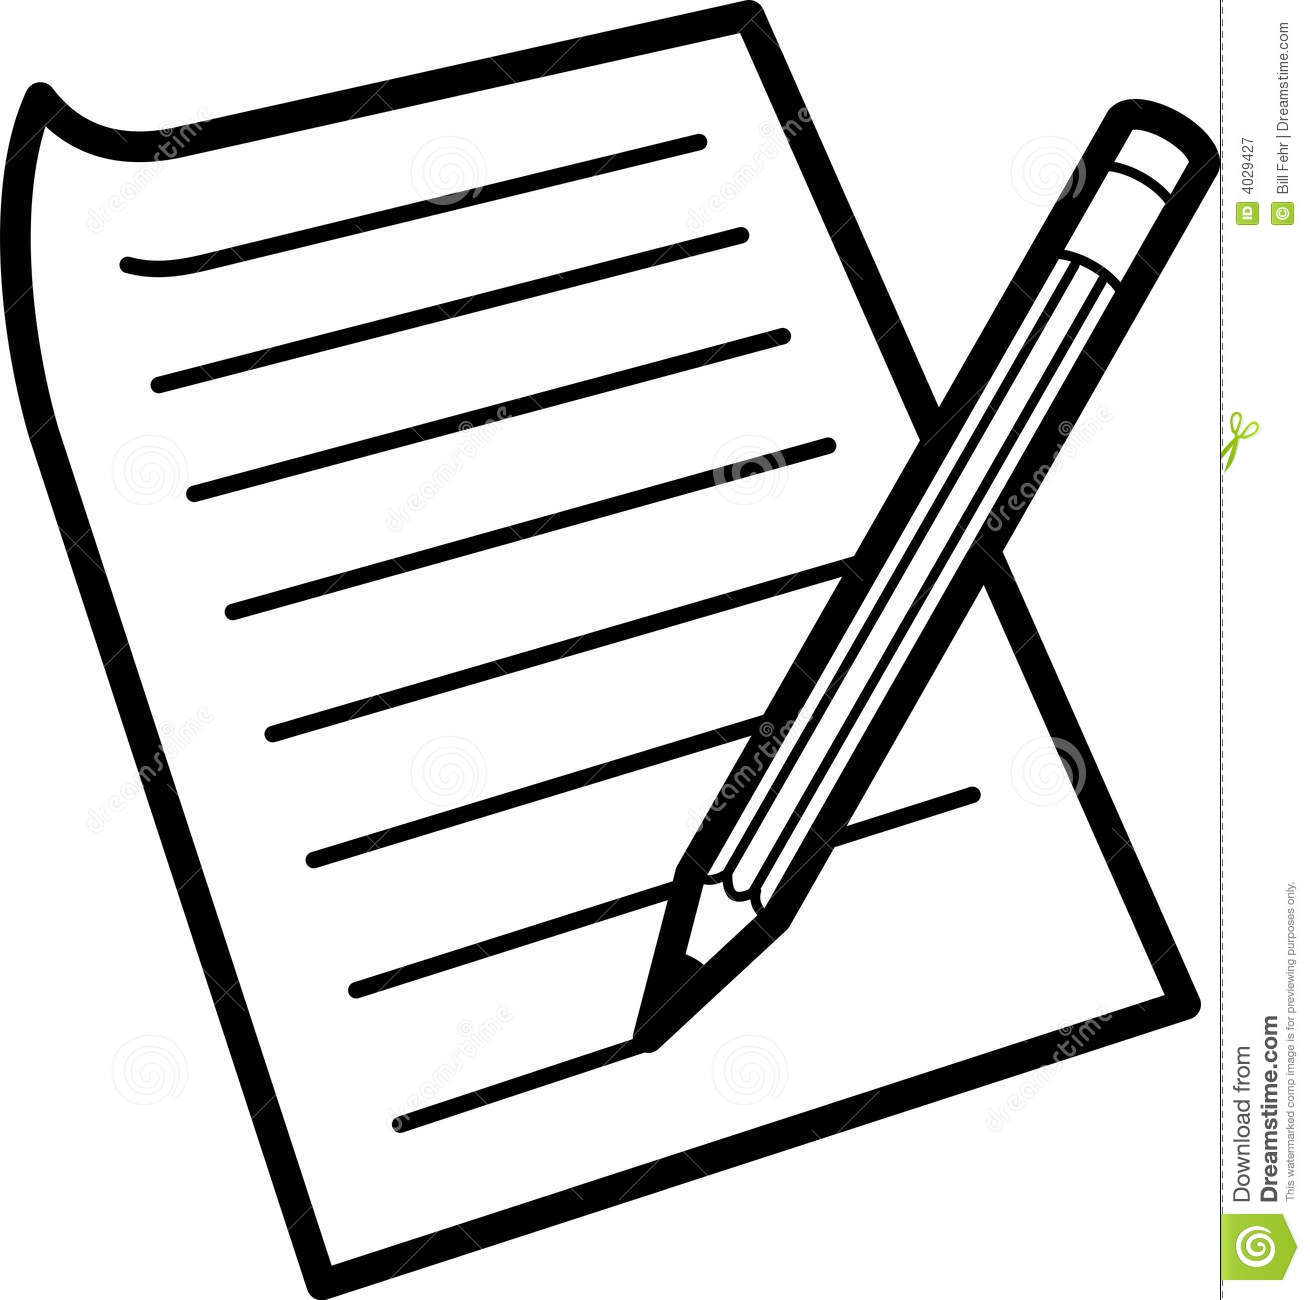 1310x1300 Research Paper Clipart